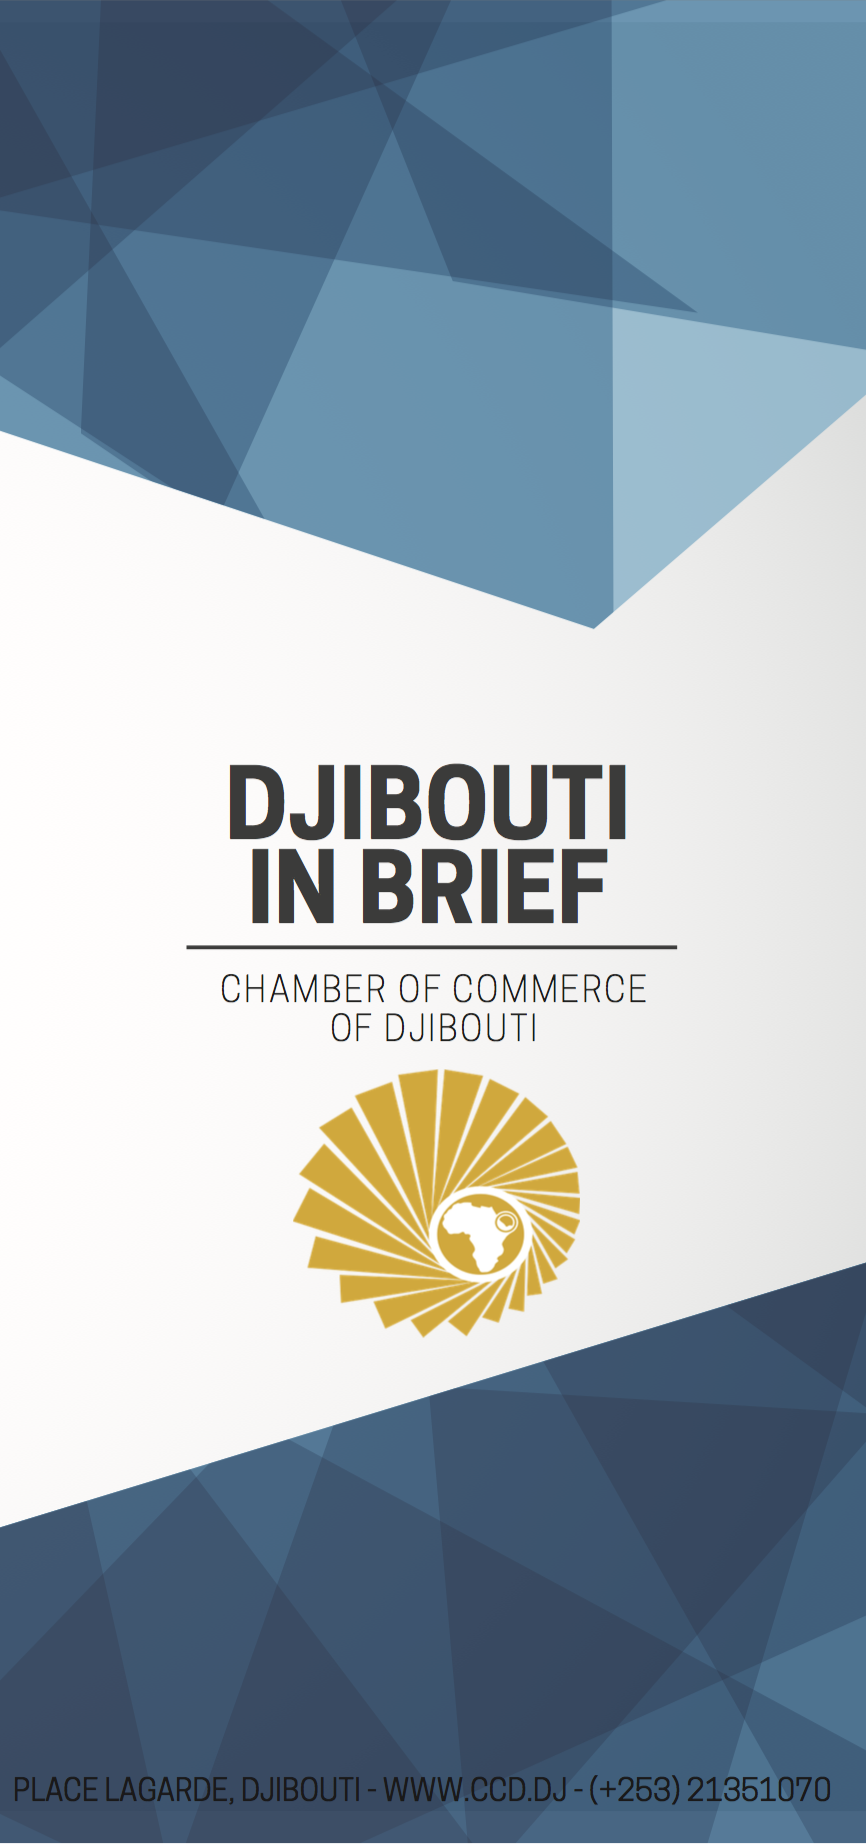 « Djibouti In Brief » pamphlet